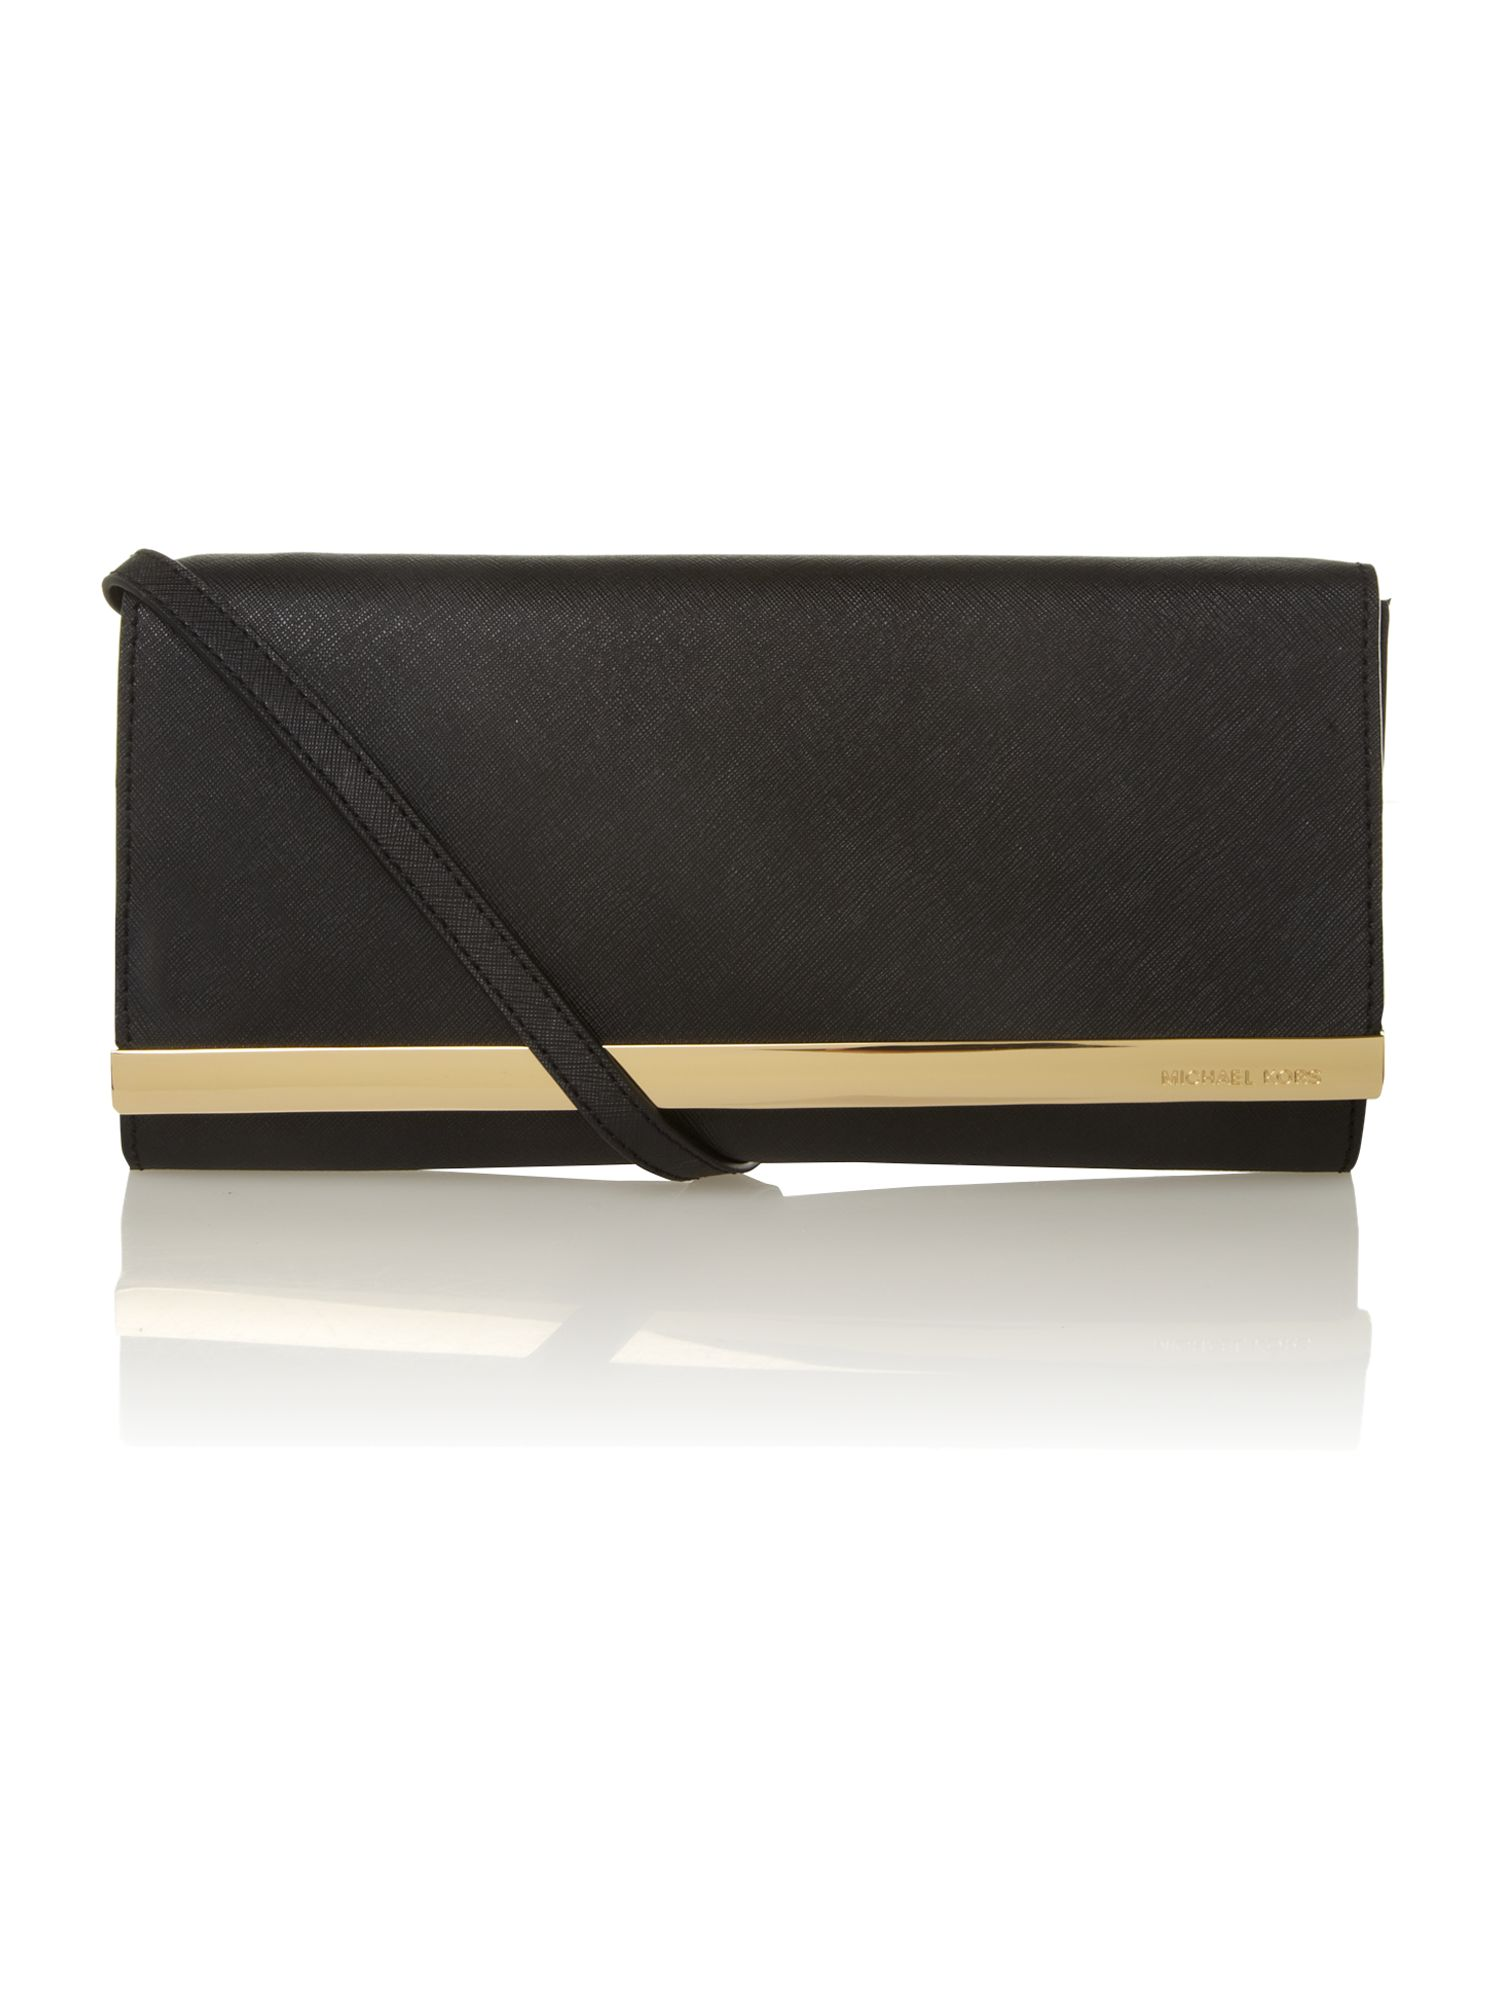 michael kors tilda clutch in black lyst. Black Bedroom Furniture Sets. Home Design Ideas